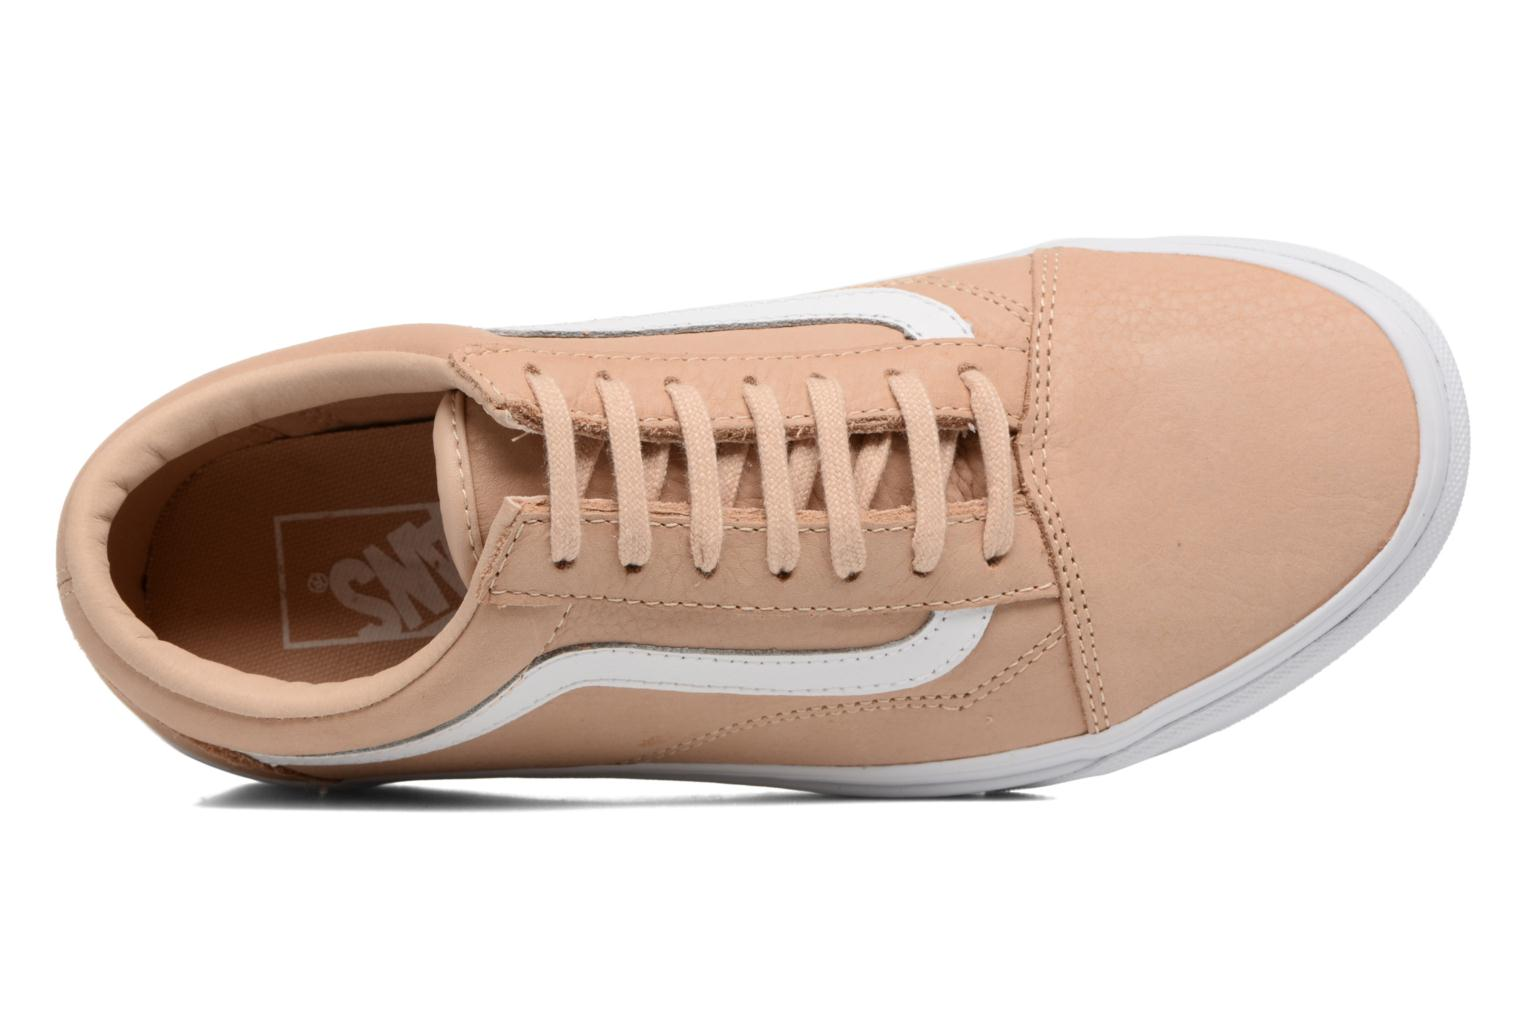 Old Skool W (Leather) Toasted Almond/True White